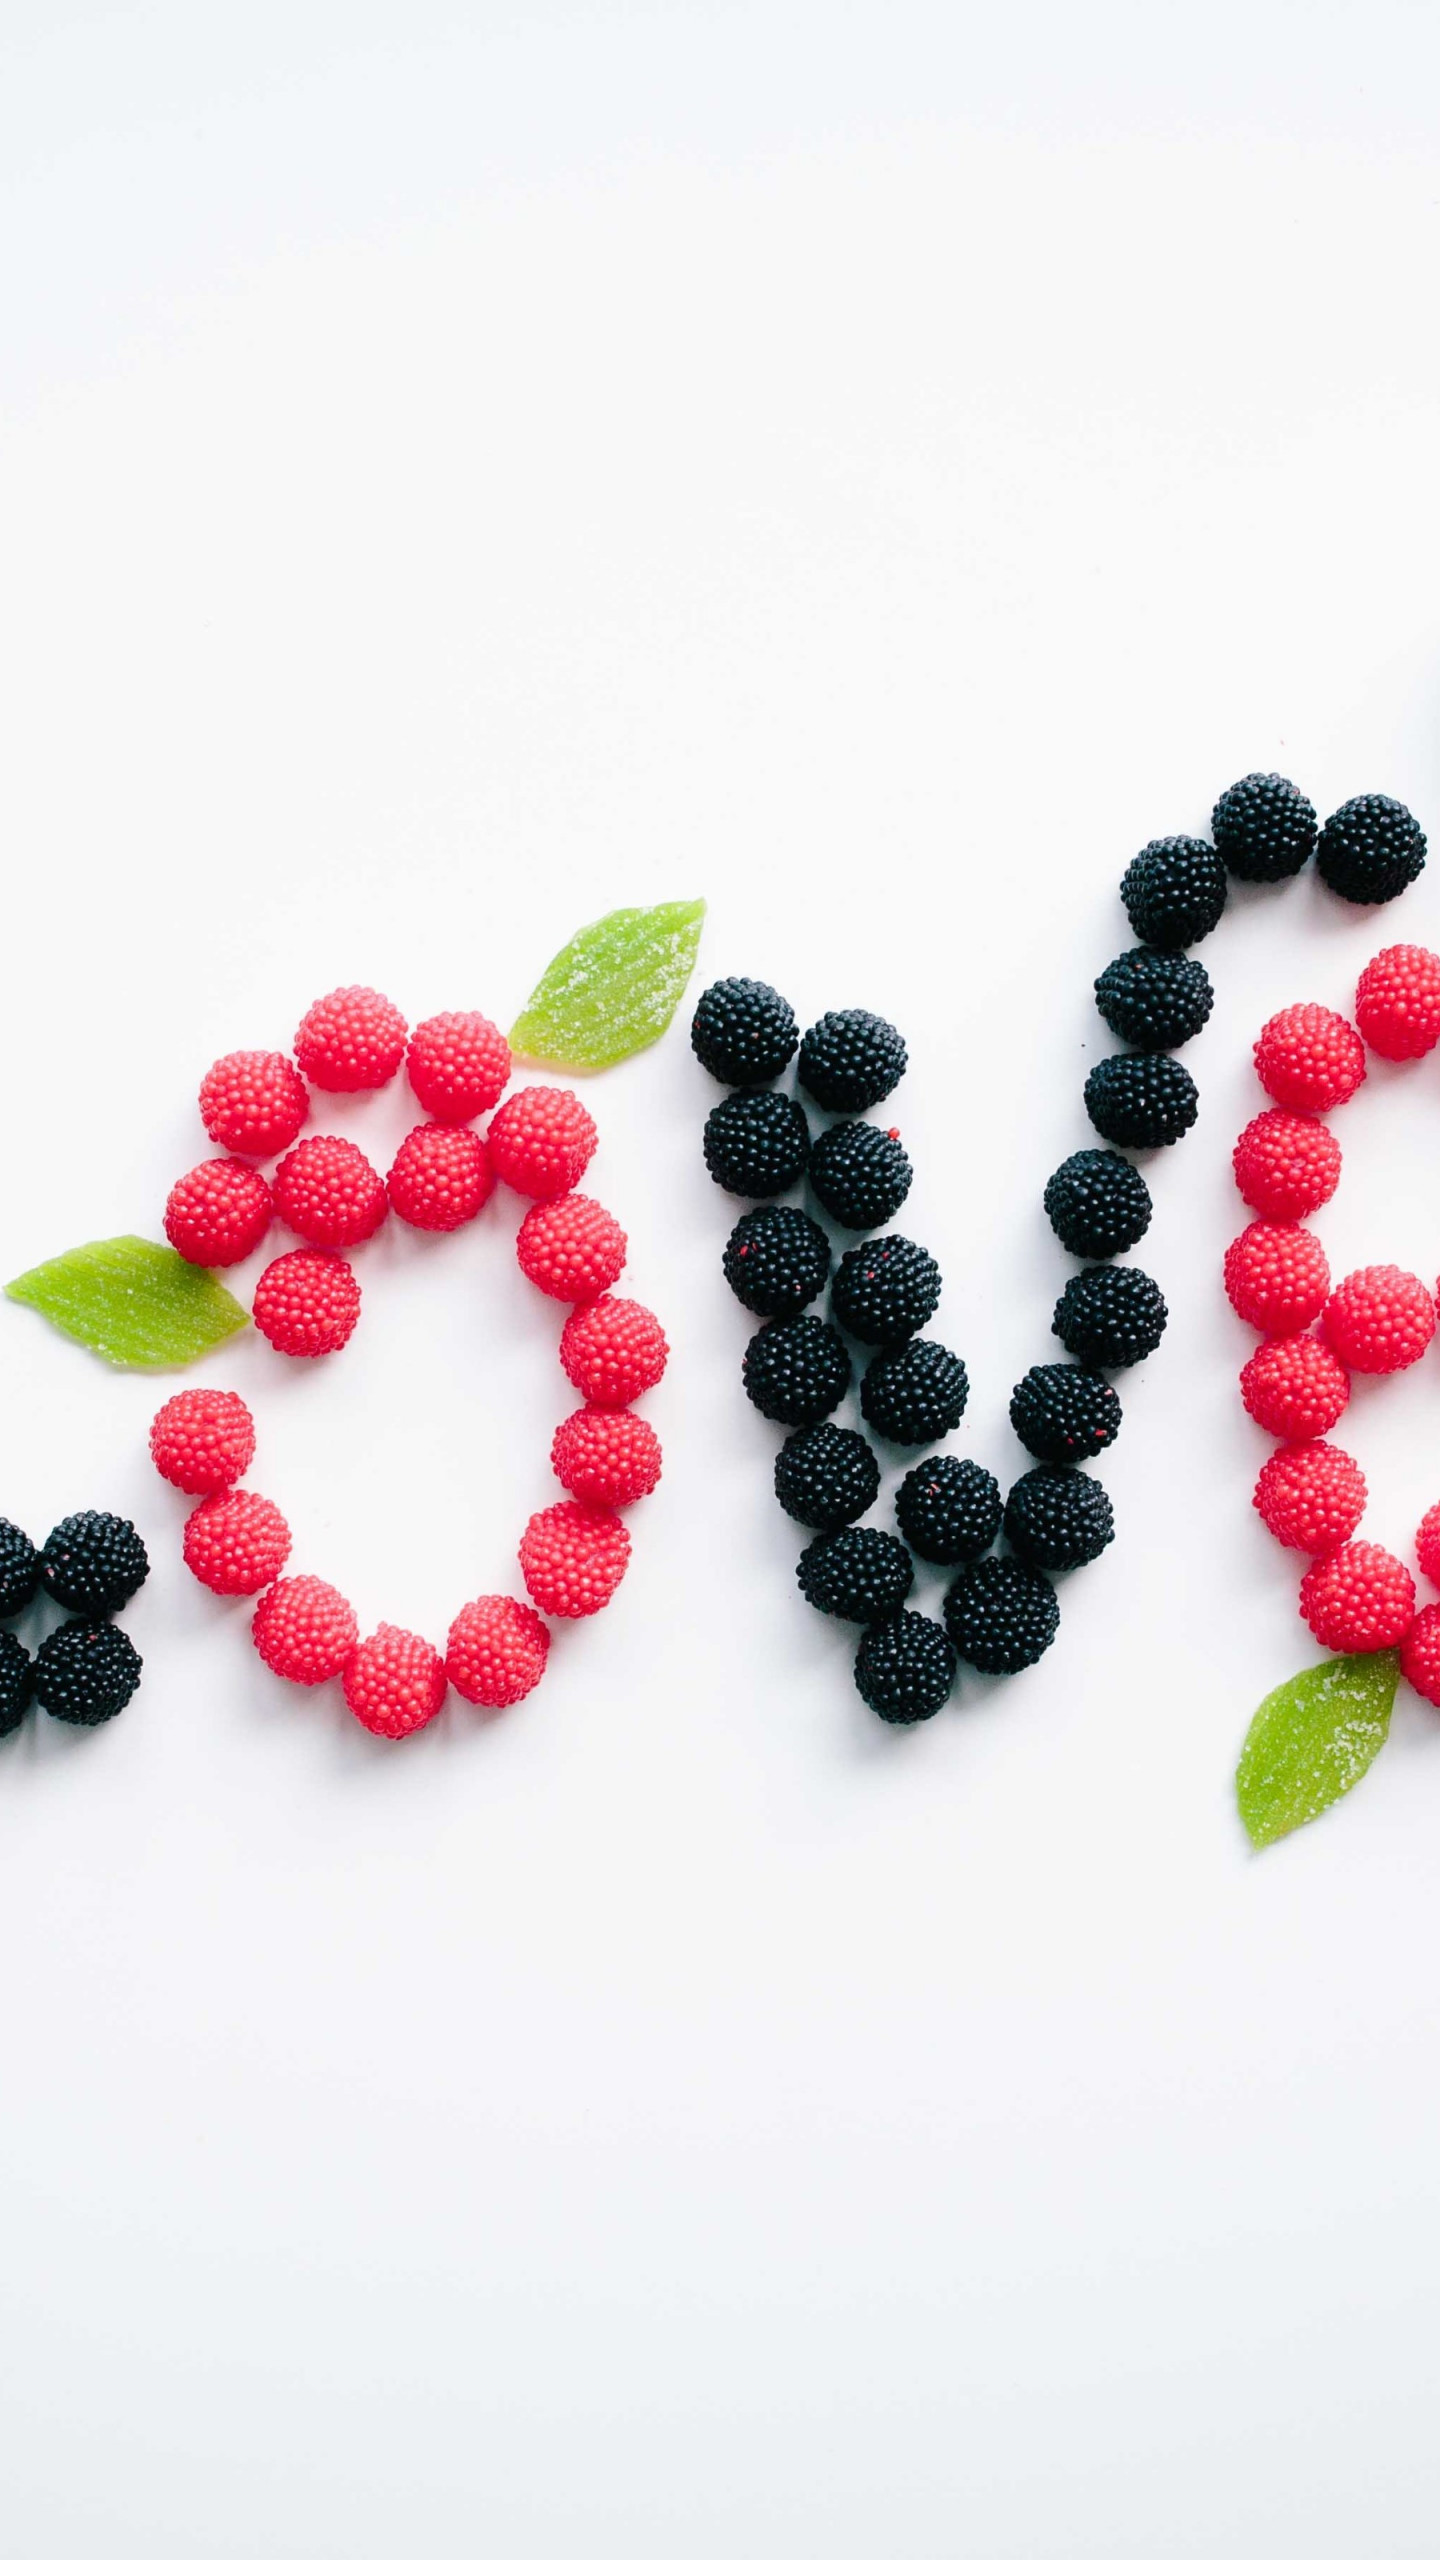 Love message with fruits | 1440x2560 wallpaper